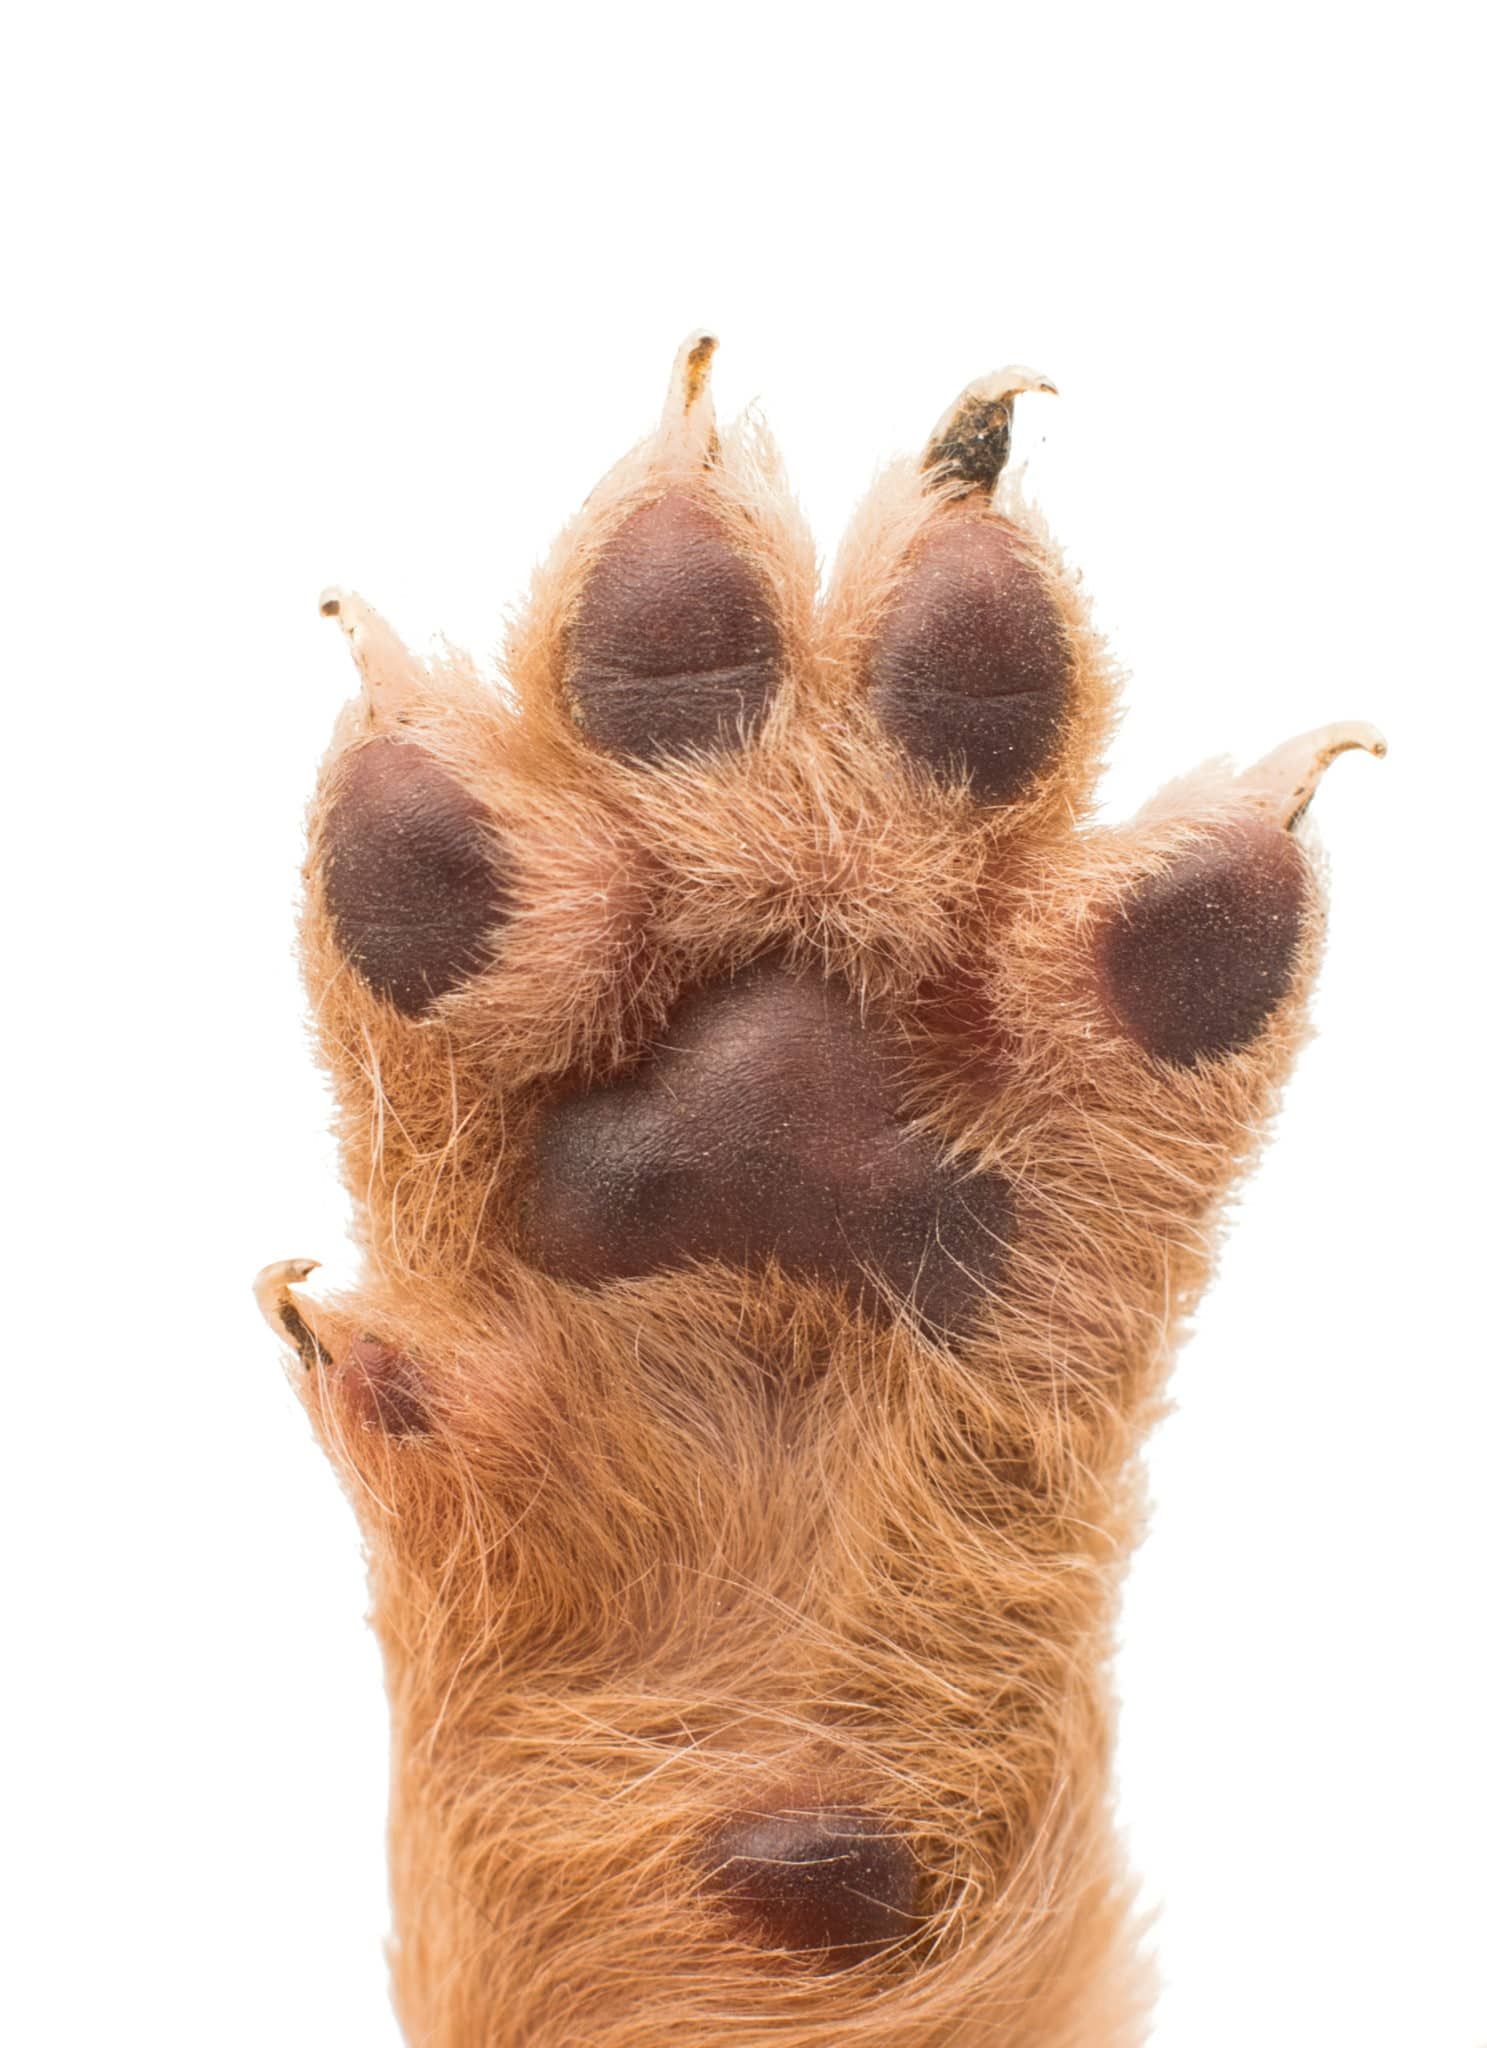 Long nails are not good for pet care